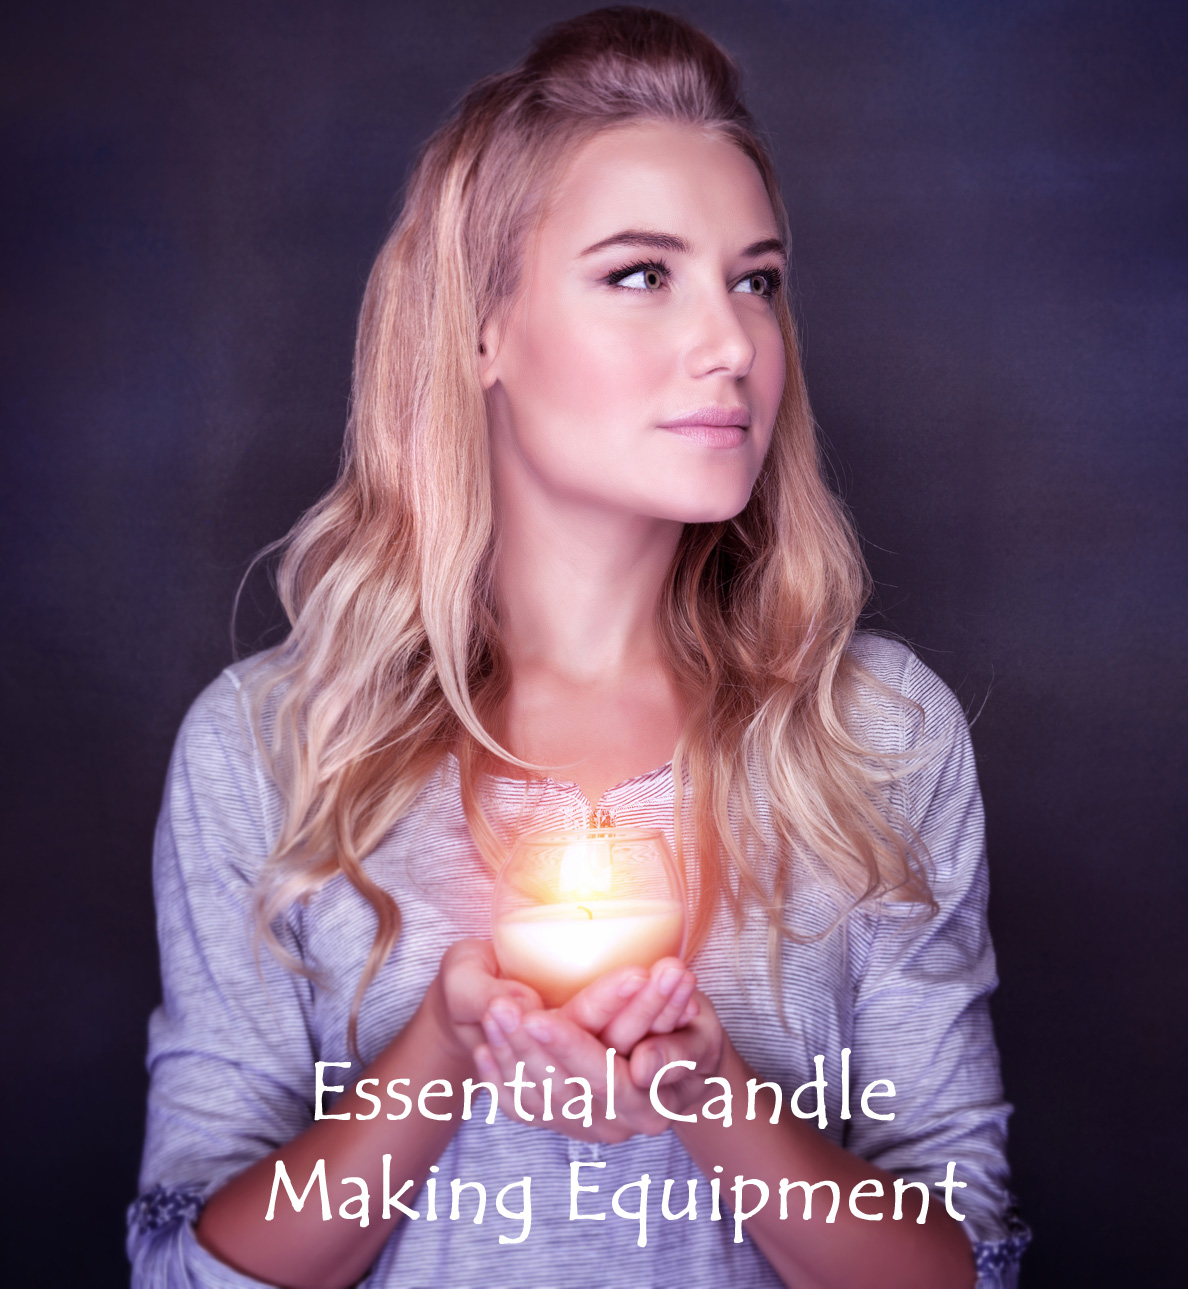 Essential Candle Making Equipment, Candle Advice